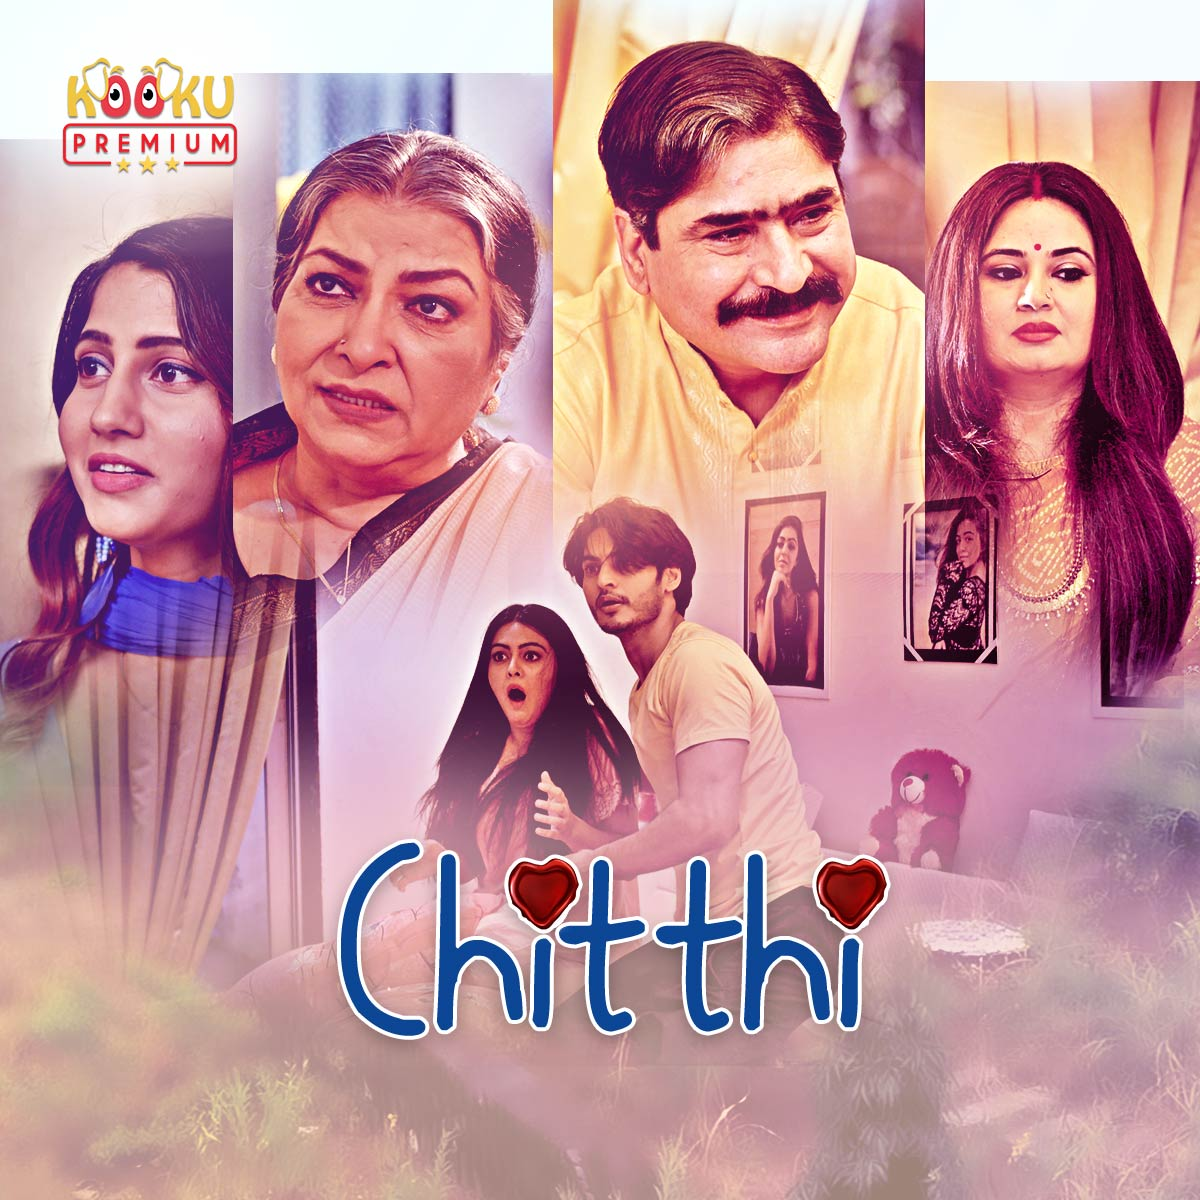 Chitthi 2020 S01 Hindi Kooku App Web Series Official Trailer 1080p HDRip 41MB Download